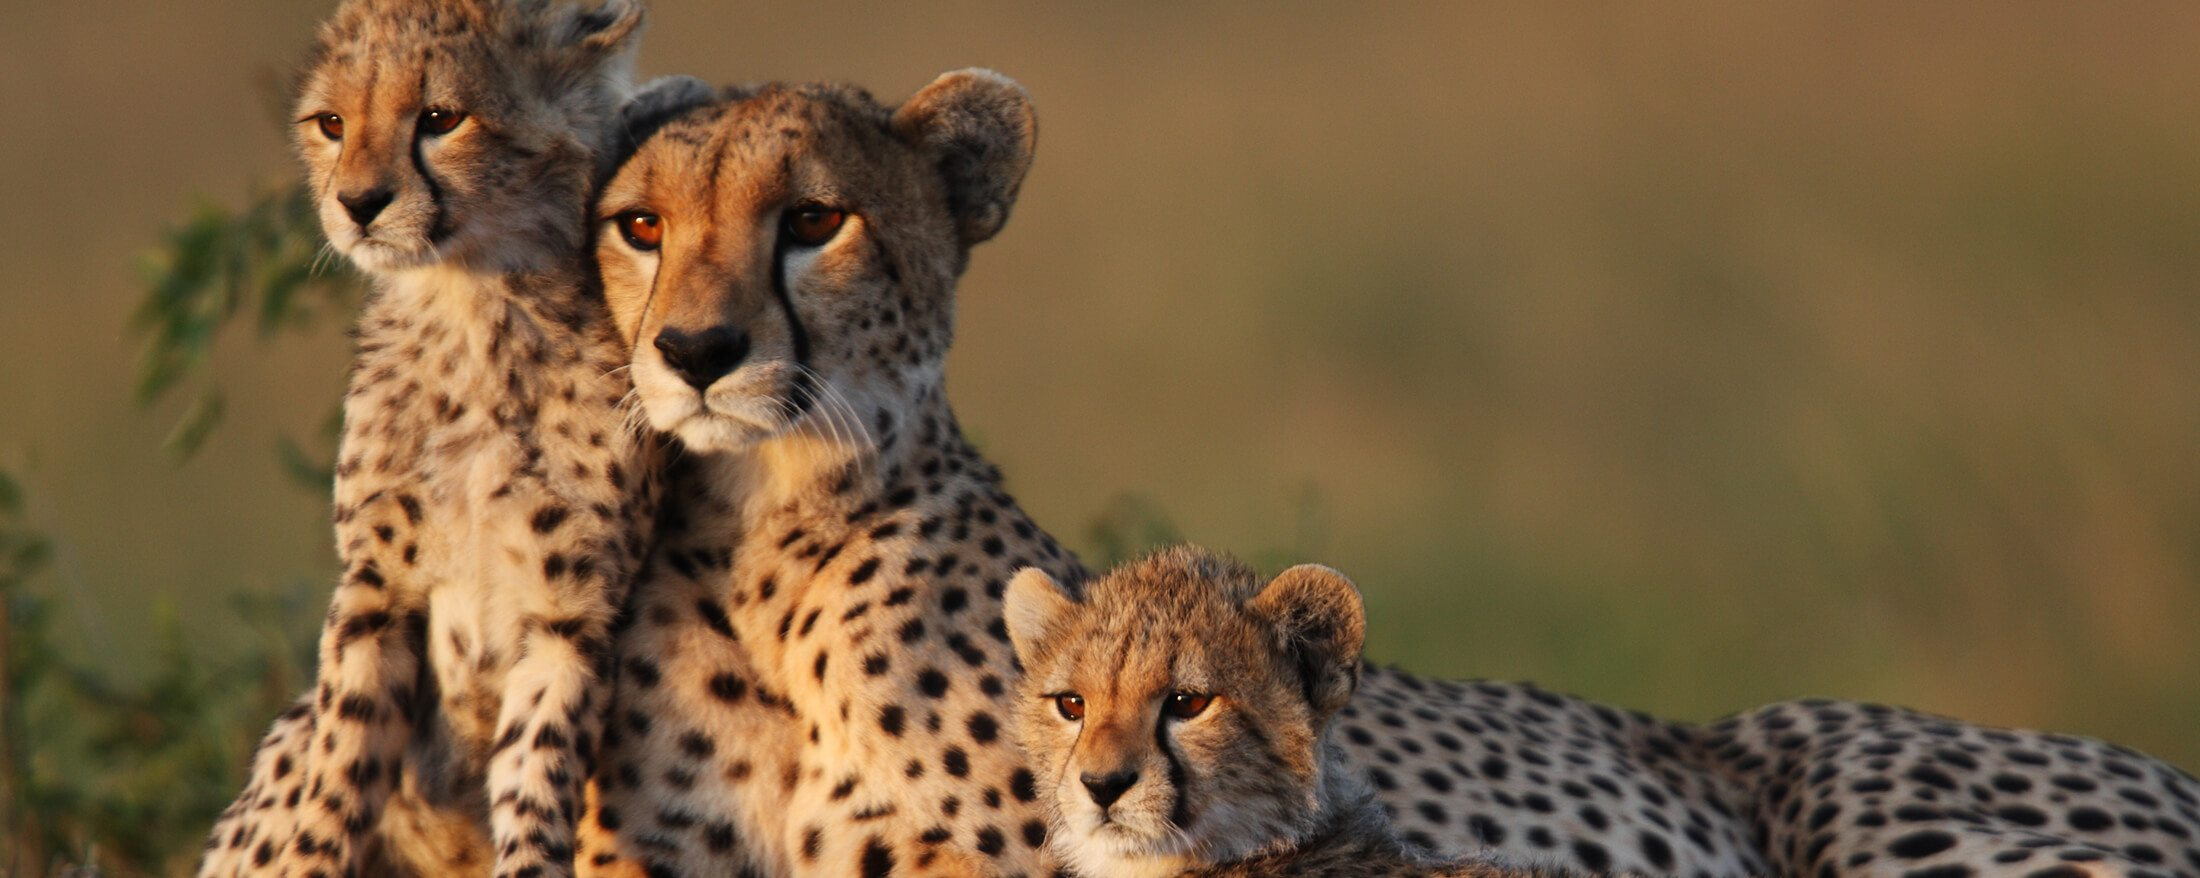 lesser-known wildlife in south africa